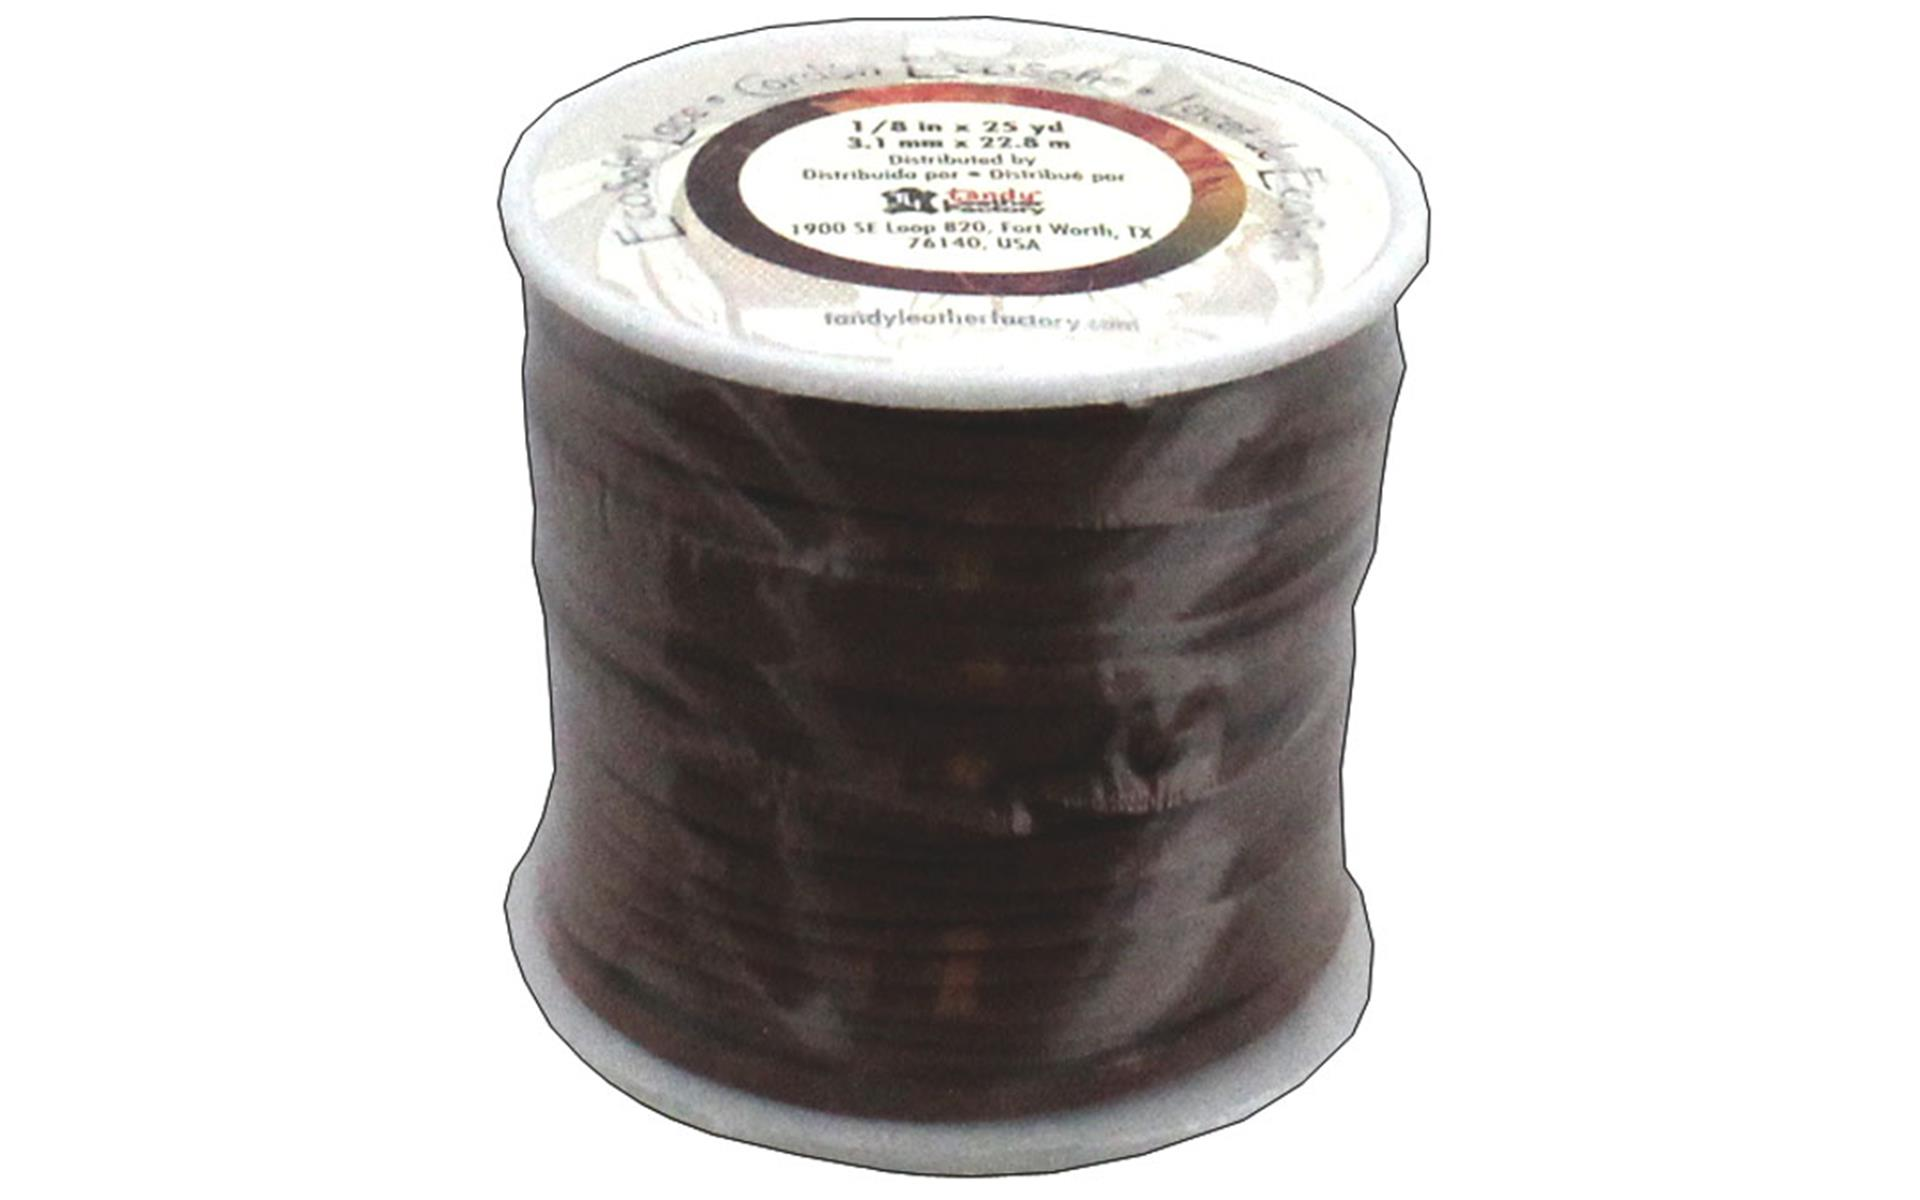 Leather Factory EcoSoft Lace Spool Dark Brown 1//8 x 25yd